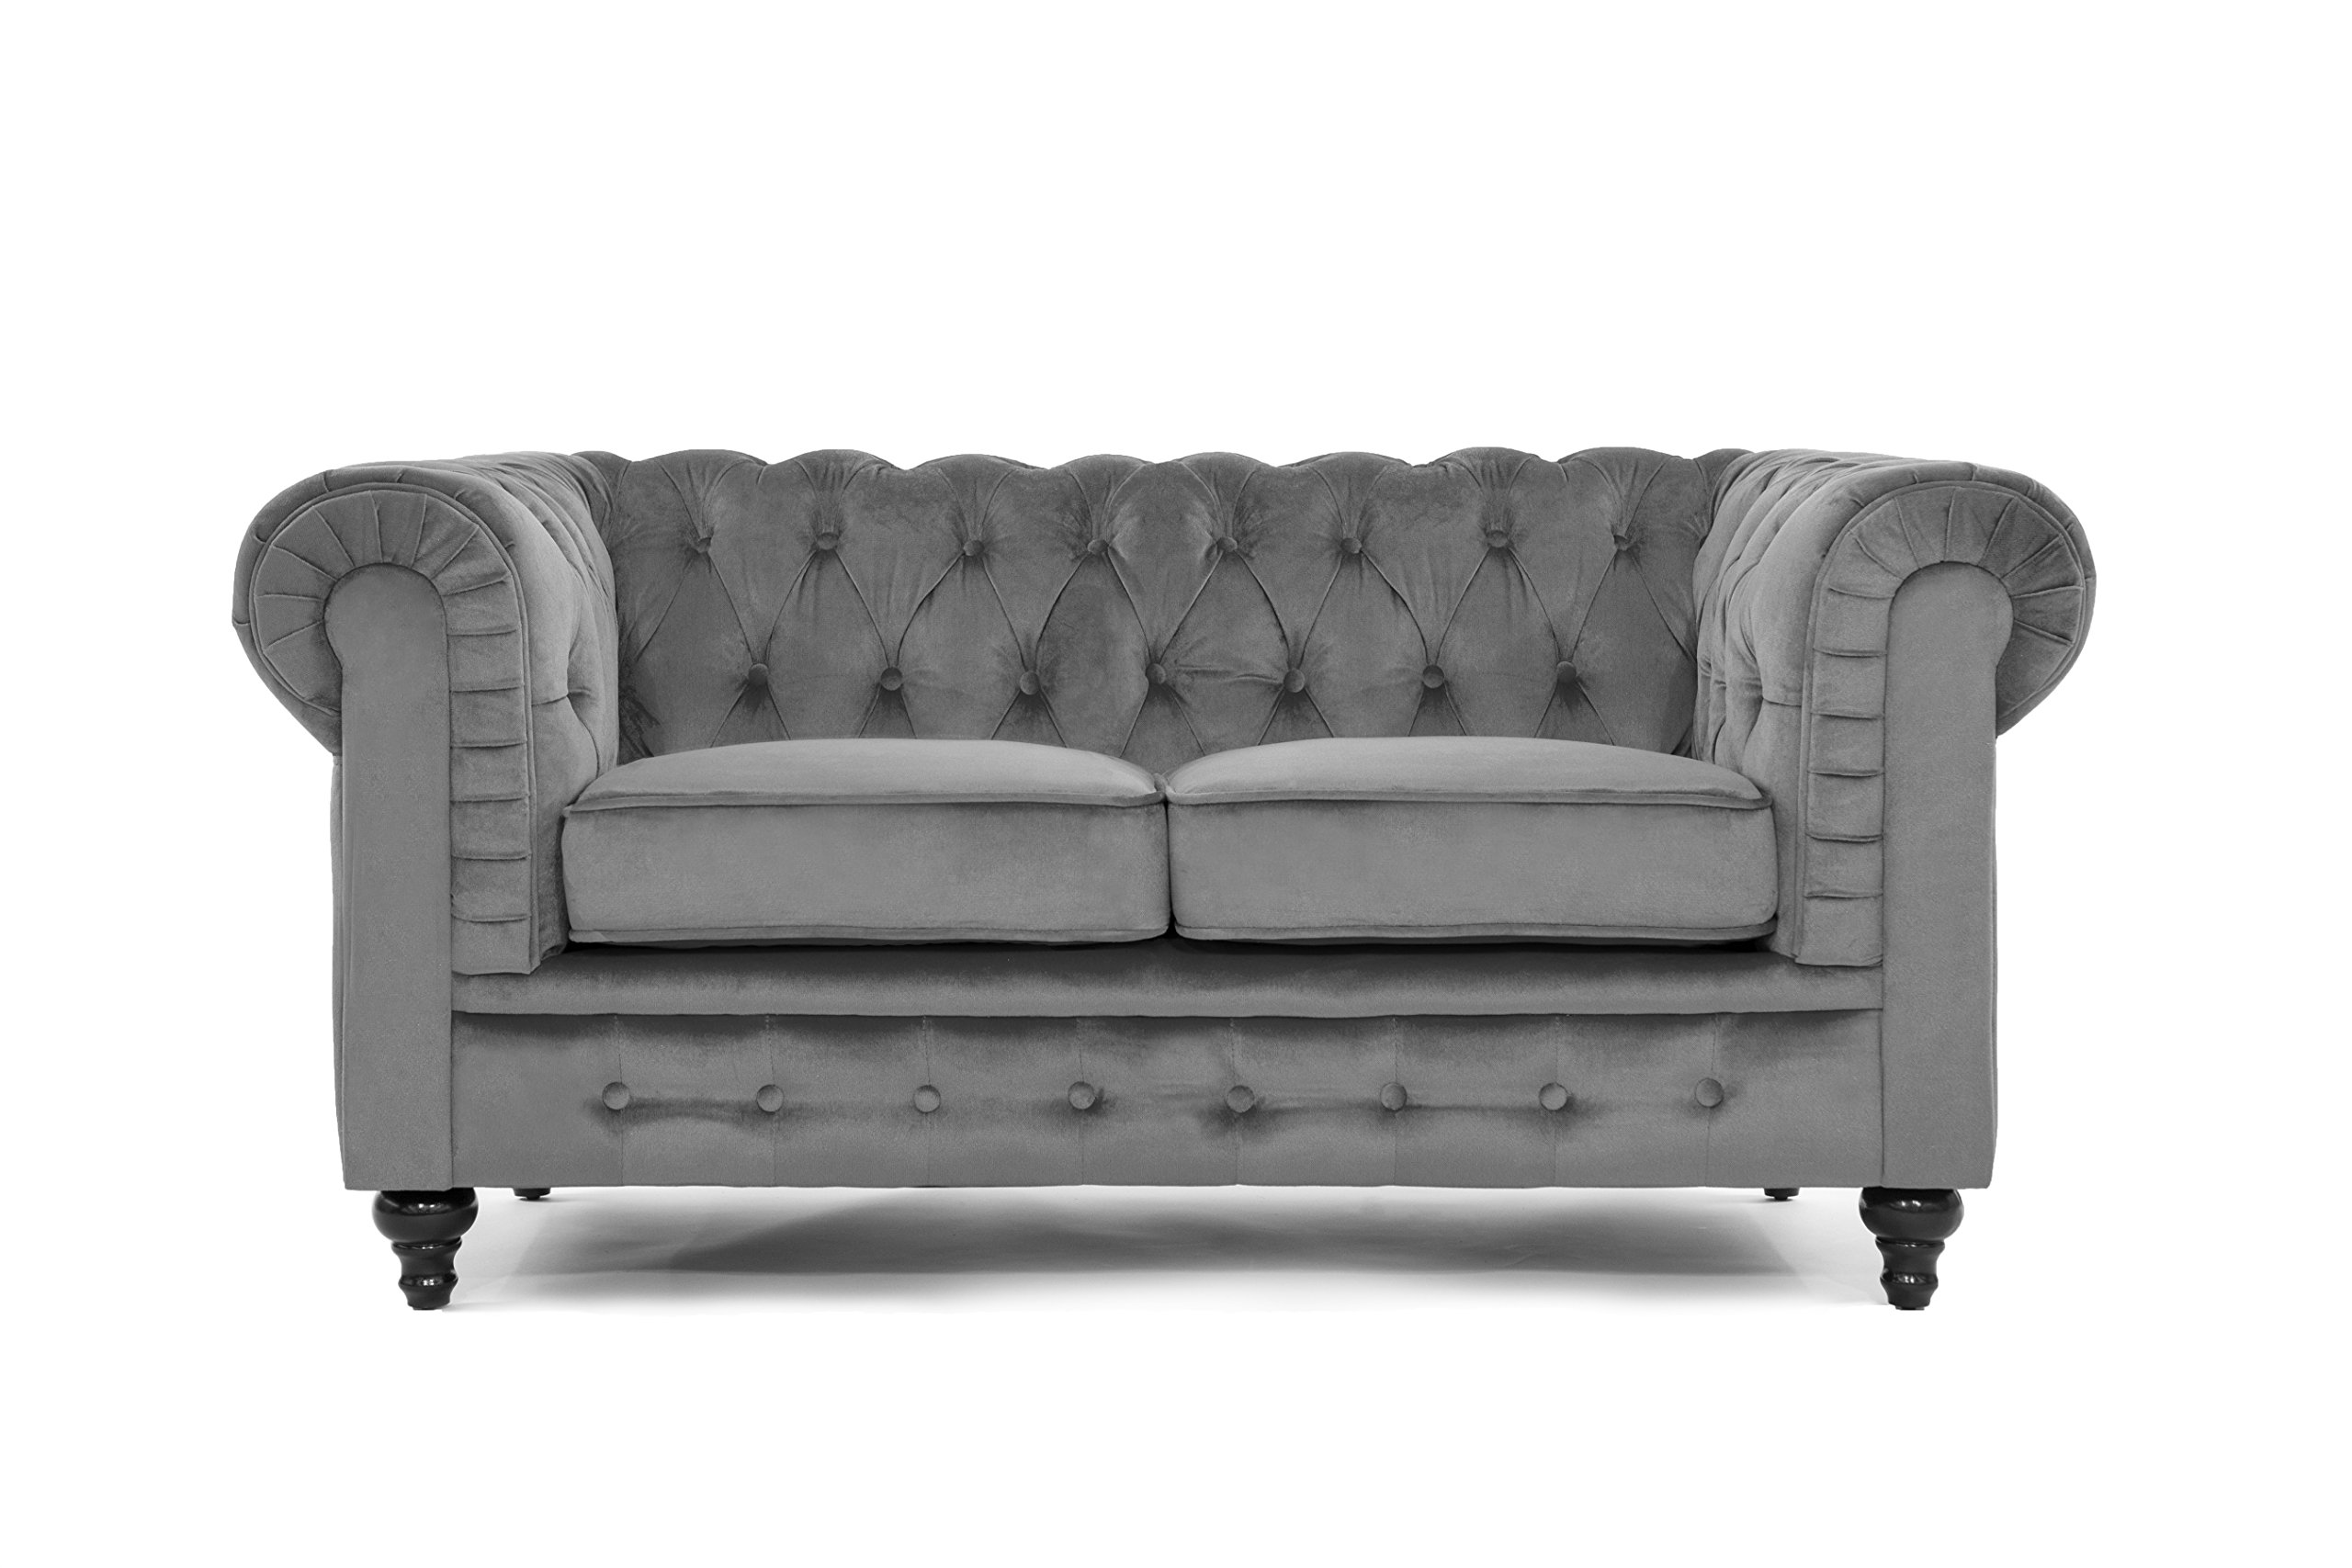 Classic Modern Scroll Arm Velvet large Love Seat Sofa in Colors Purple, Red, Black, Grey (Grey)